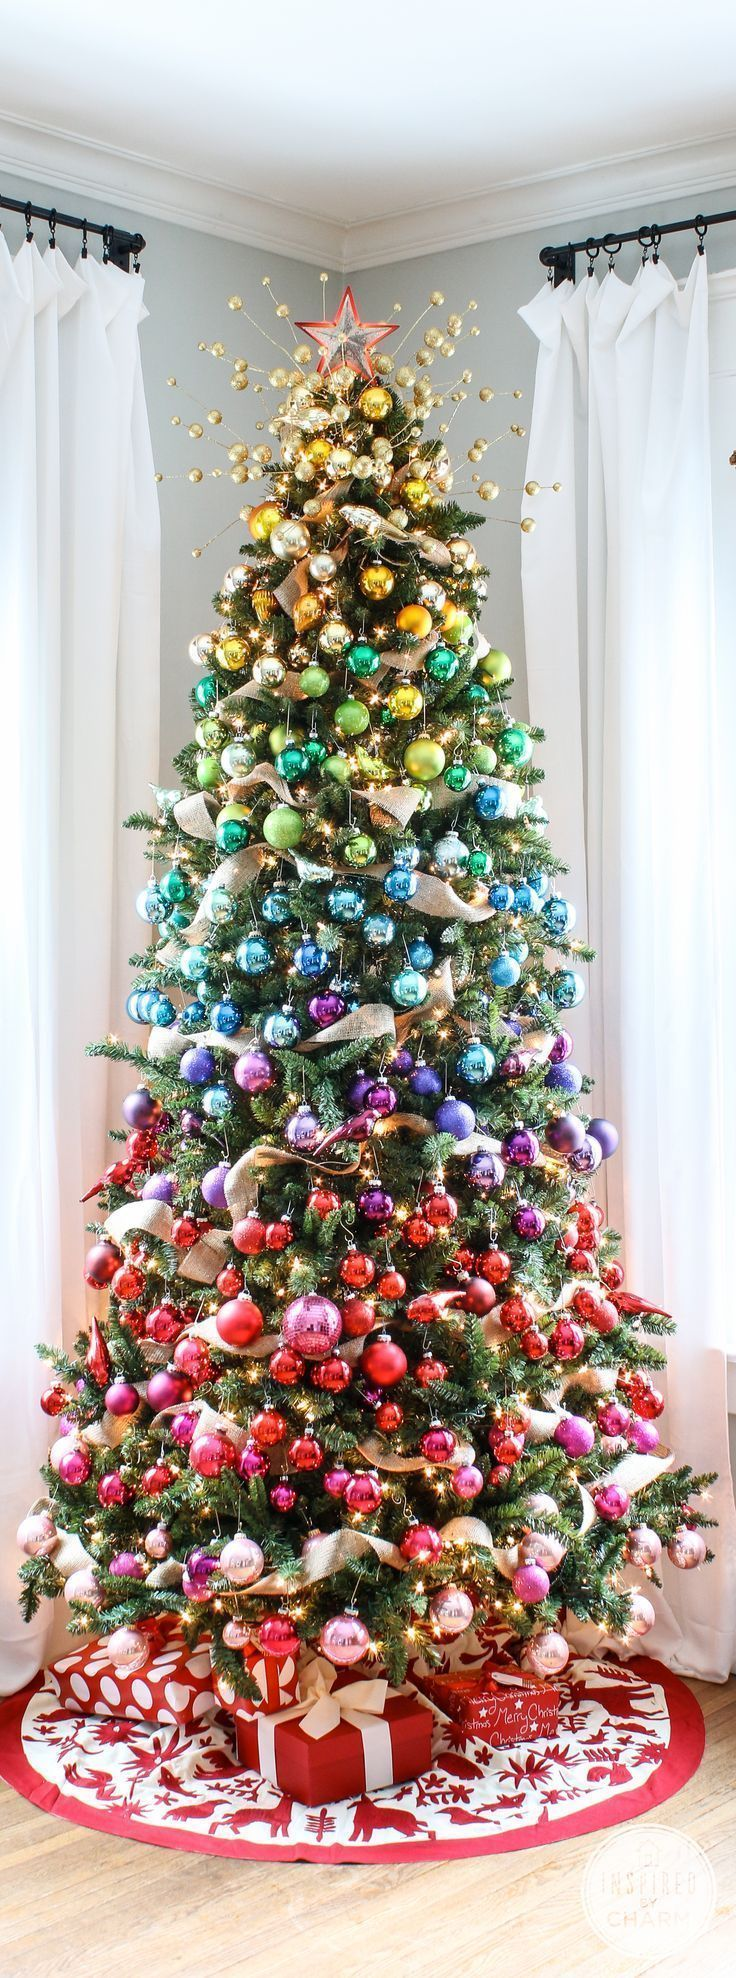 A Colorful Christmas Tree Idea Gradient Christmas Tree I Like This And Think It S Pretty Rainbows Christmas Colorful Christmas Tree Christmas Inspiration